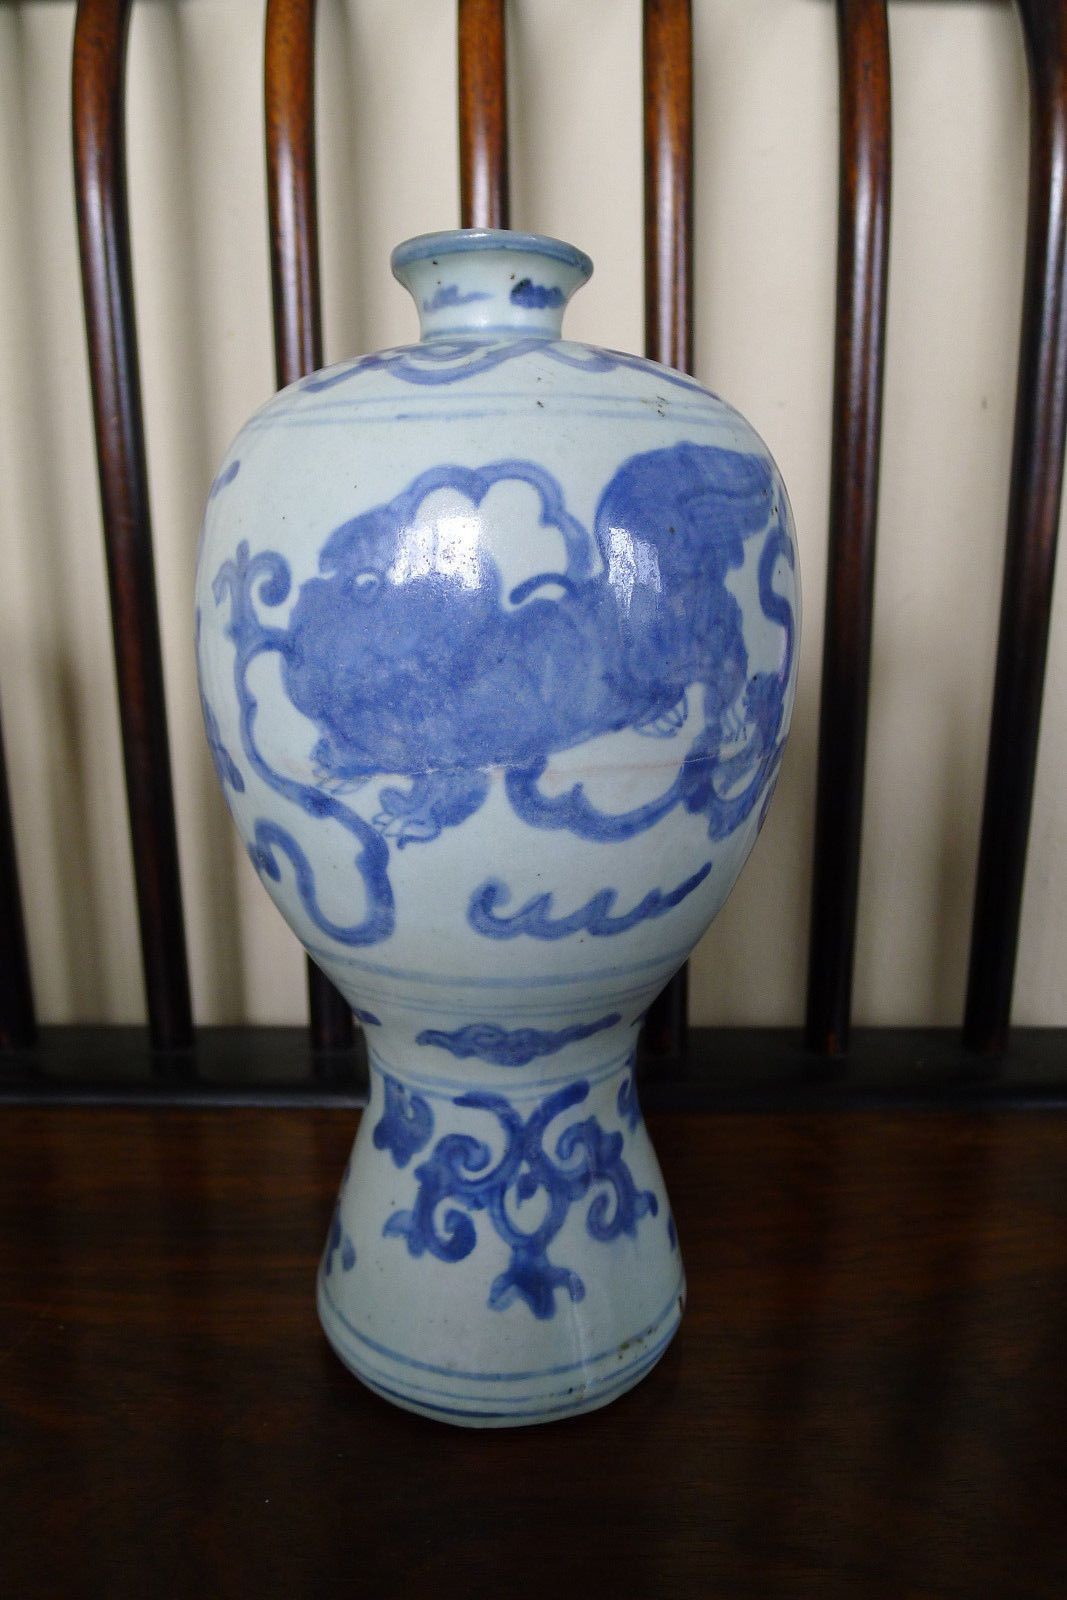 African Vases for Sale Of Antique Rare Old Chinese Ming Dynasty Blue and White Vase Please Pertaining to Antique Rare Old Chinese Ming Dynasty Blue and White Vase Please Retweet